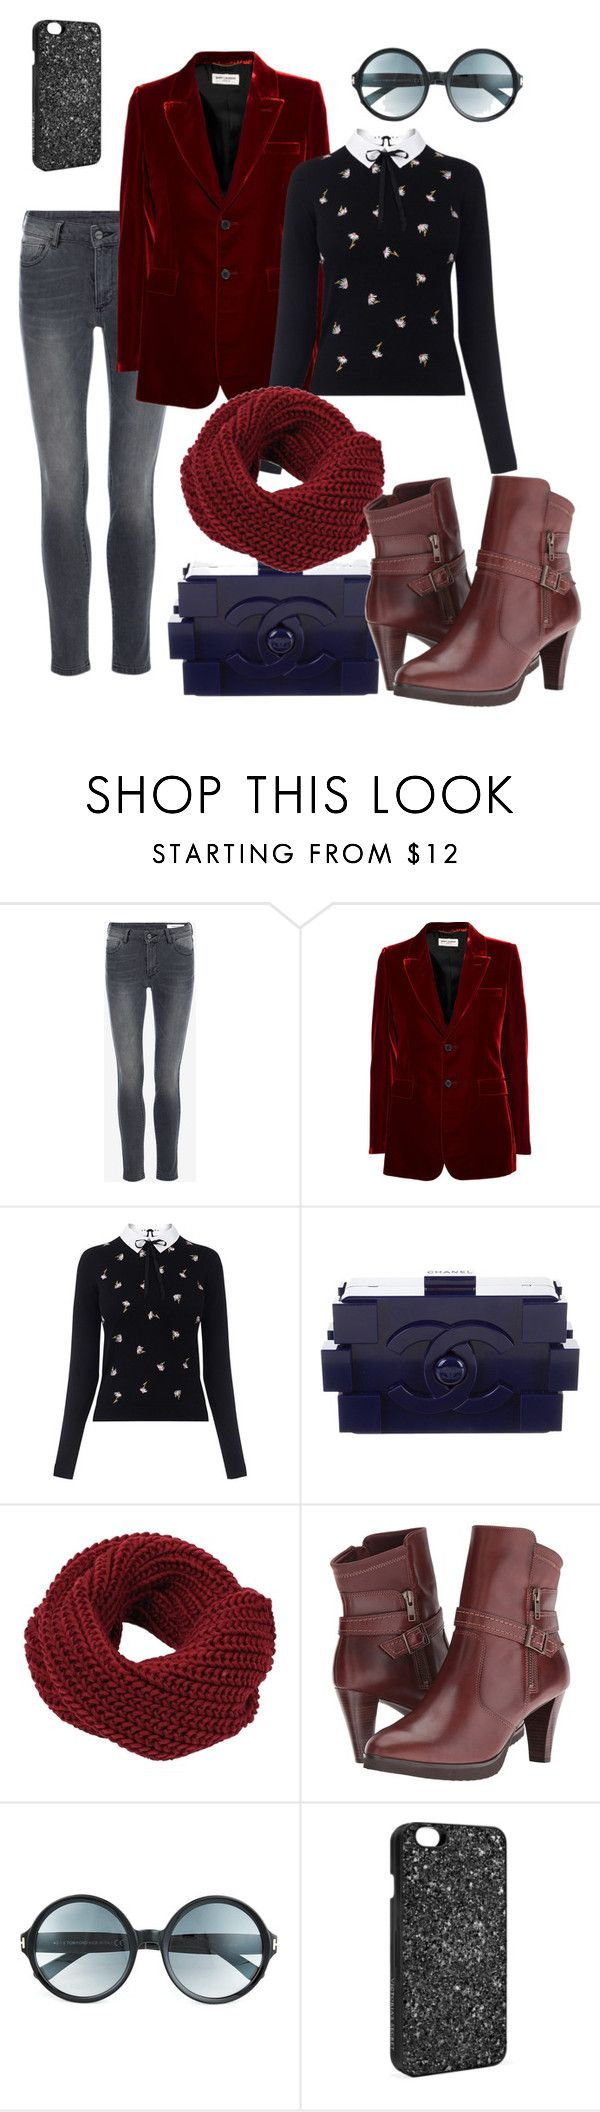 """""""La giacca in velluto"""" by valentina-viola-1 ❤ liked on Polyvore featuring Yves Saint Laurent, Oasis, Chanel, Walking Cradles, Tom Ford and Victoria's Secret"""